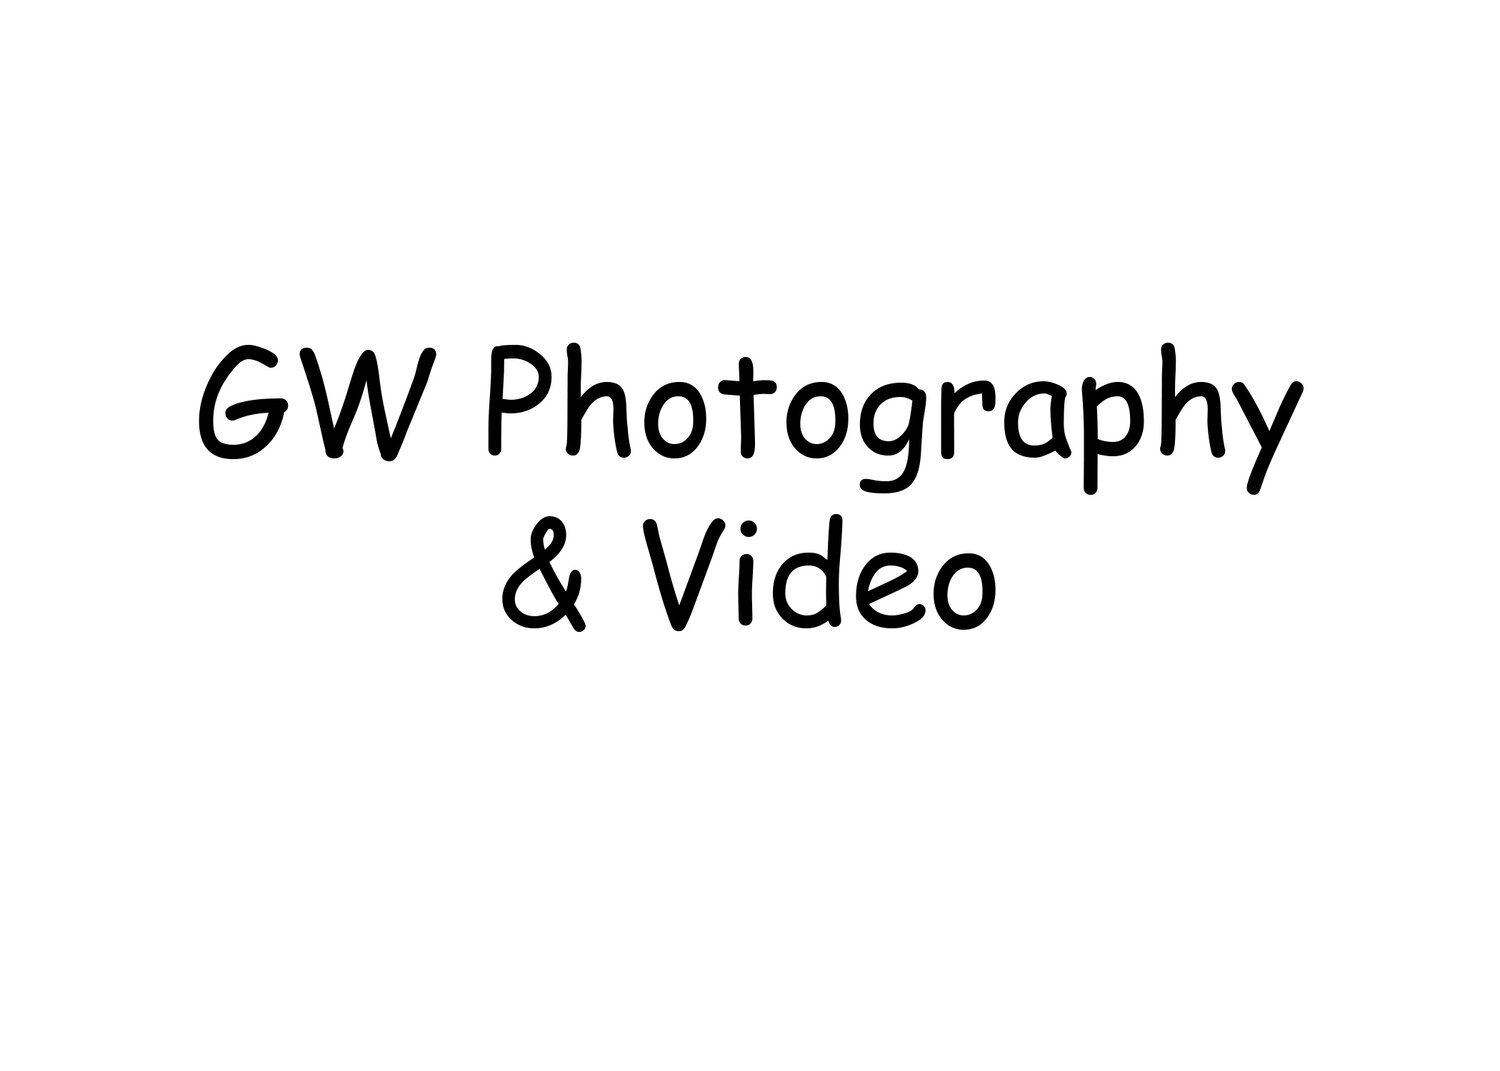 GW Photography & Video